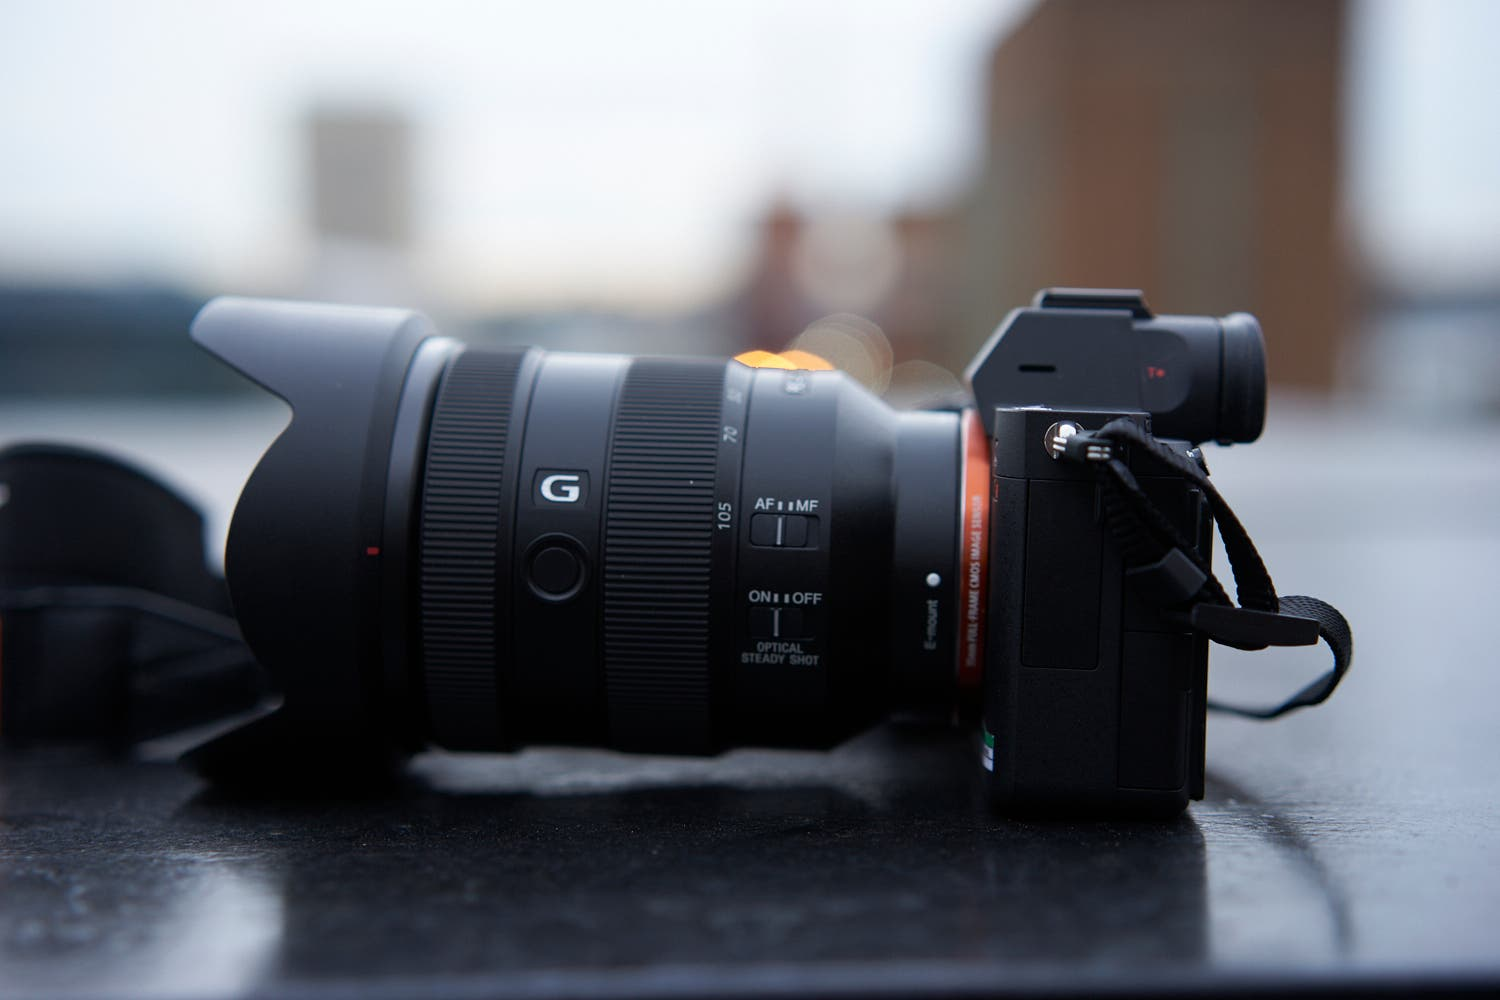 Review: Sony 24-105mm f4 G OSS (Sony E, Full Frame)